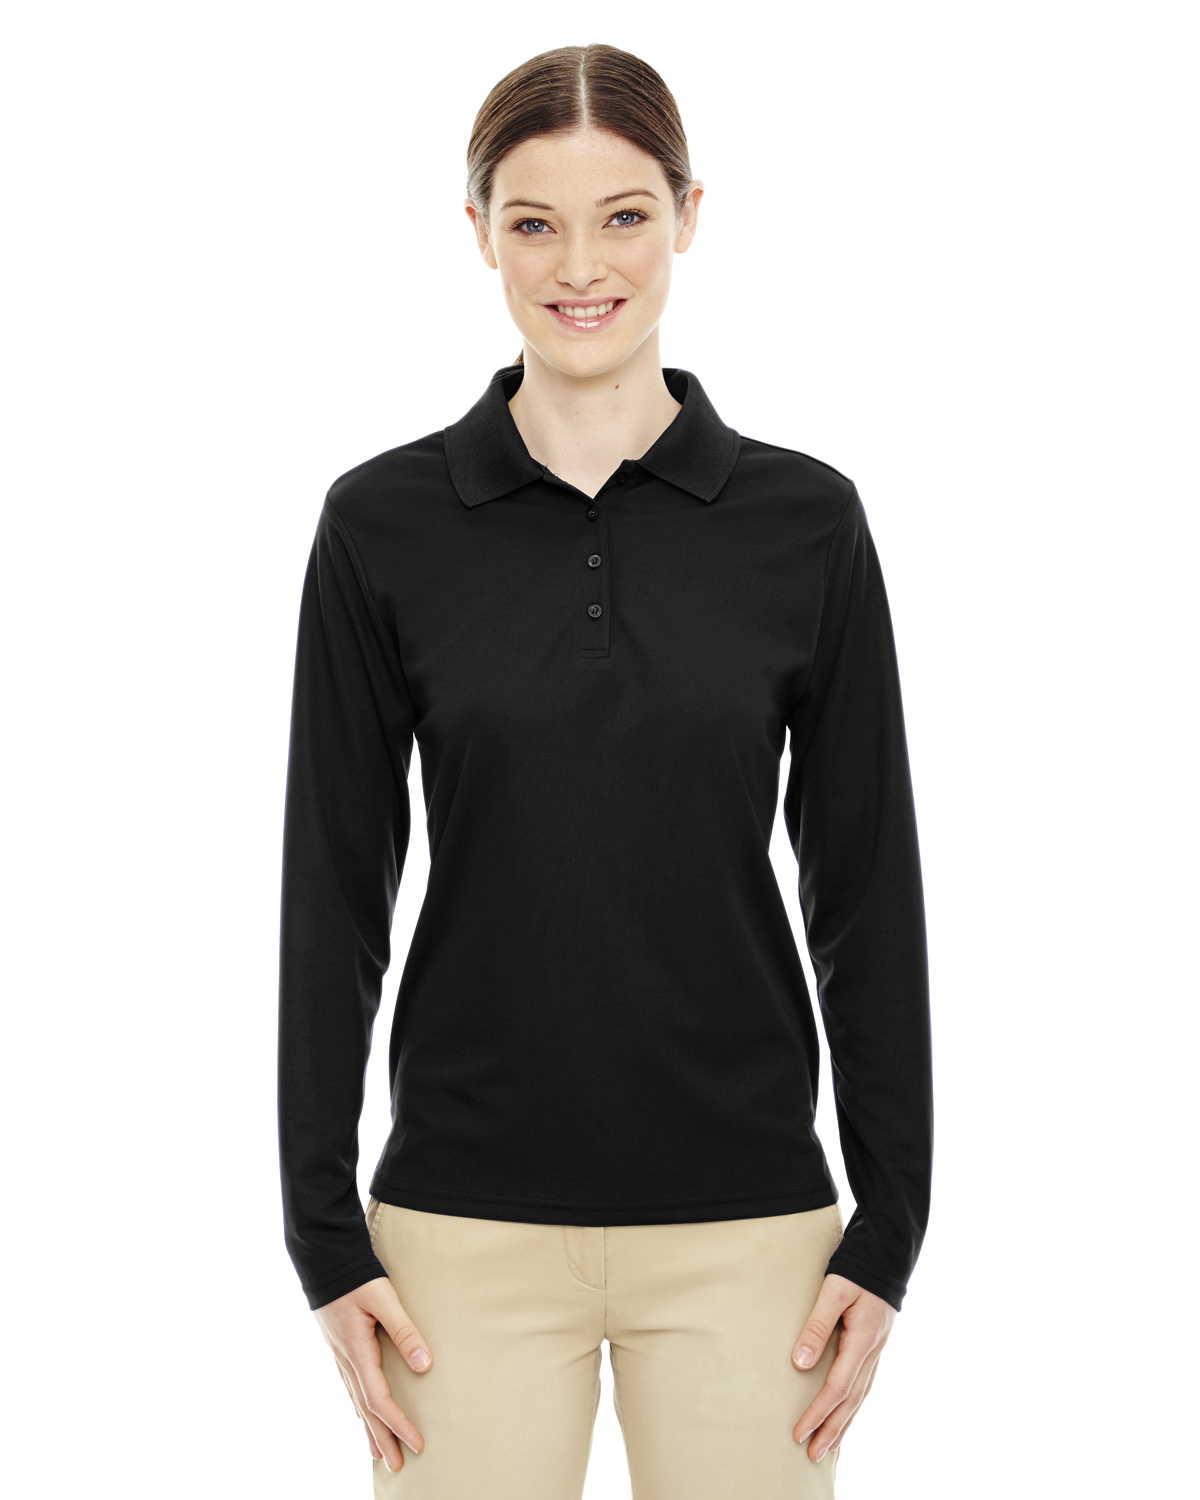 Core 365 Womens Uv Protect Performance Long Sleeve Piqu S